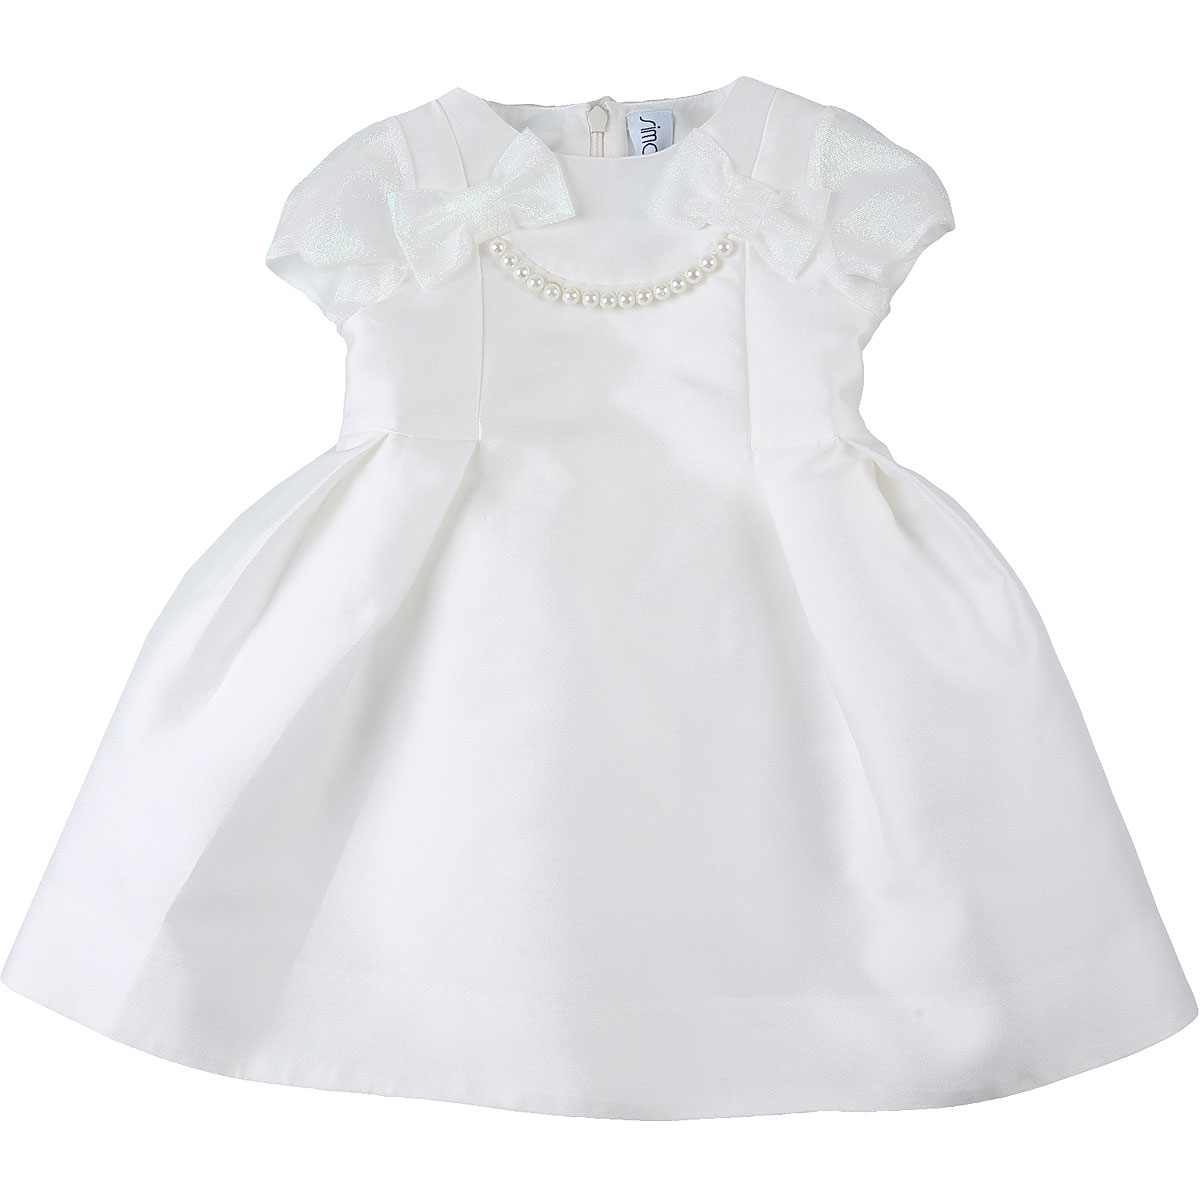 Simonetta Baby Dress for Girls On Sale, White, polyester, 2019, 2Y 3Y